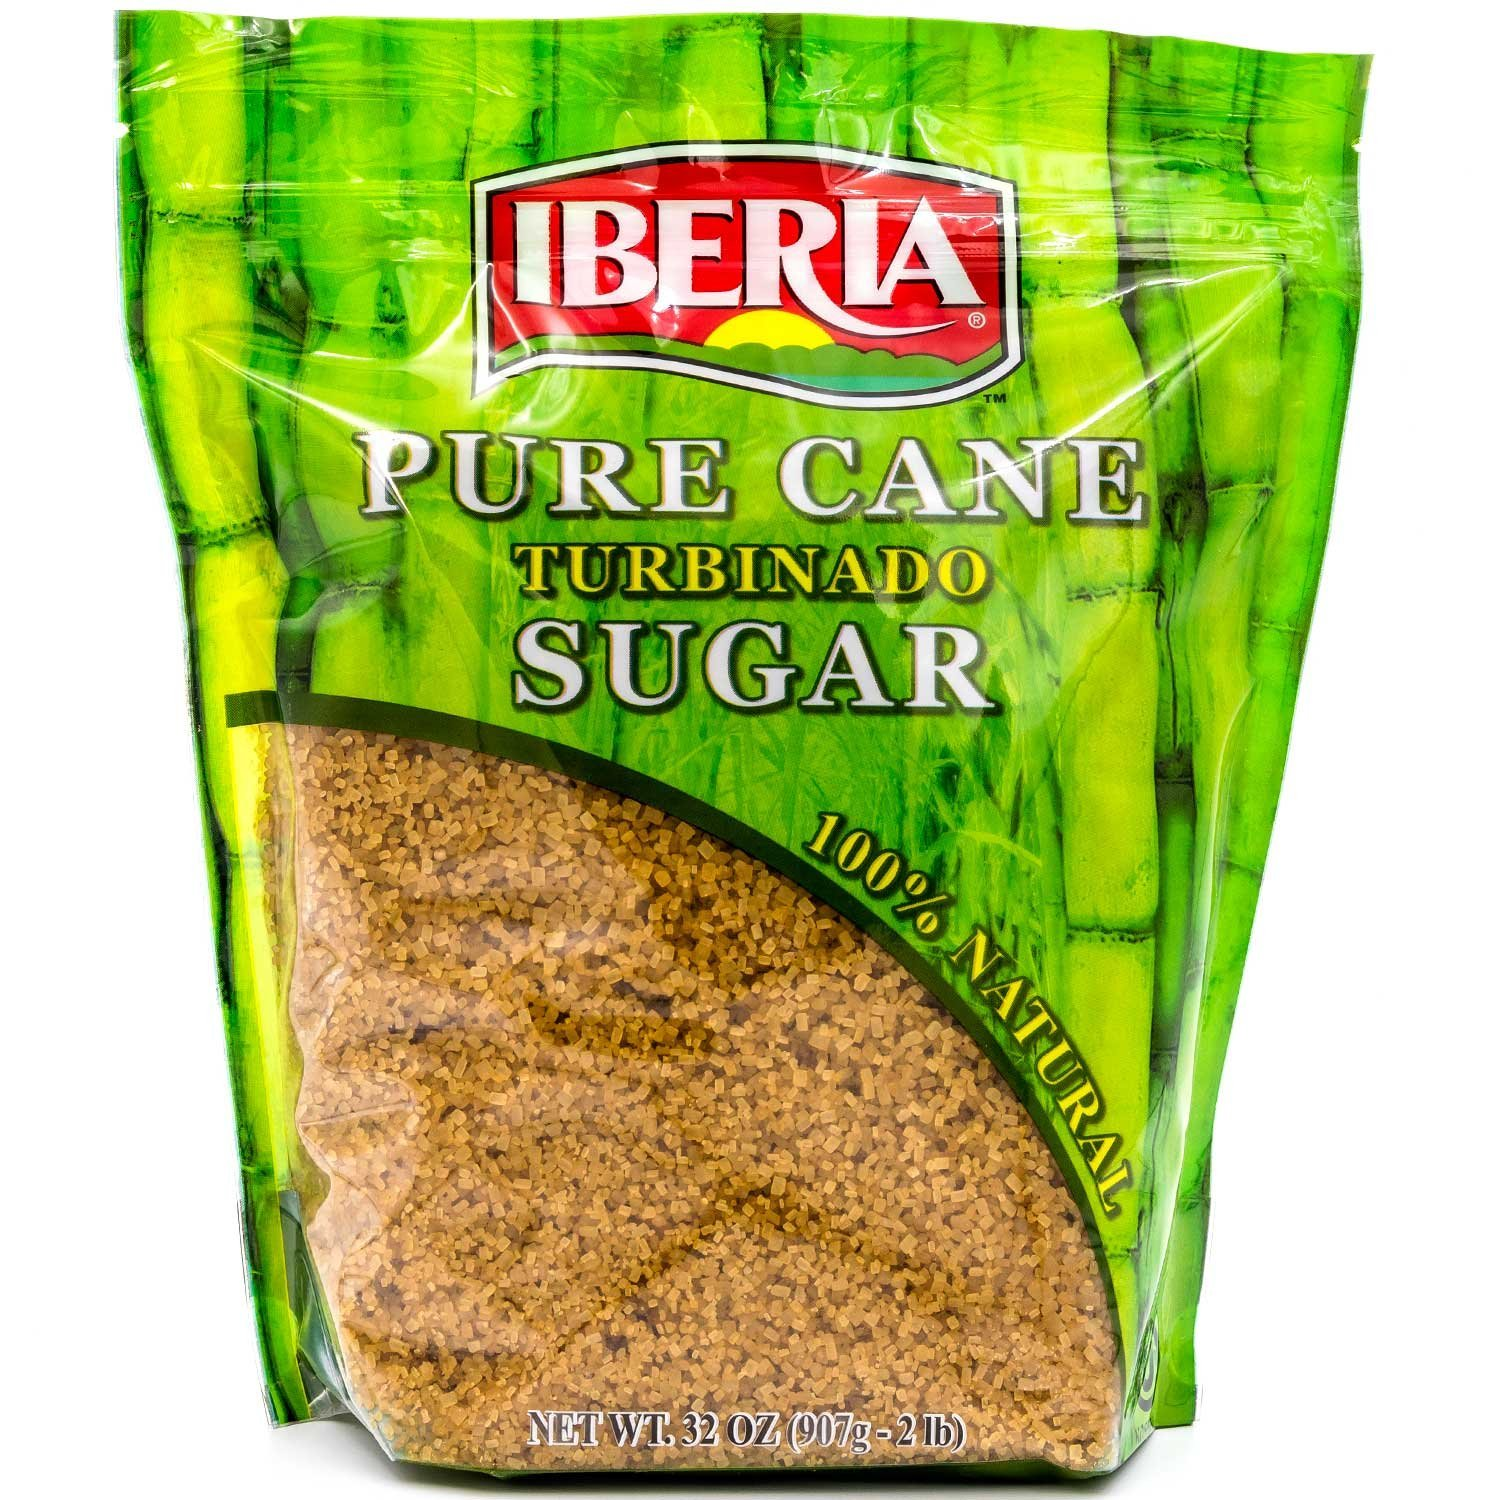 Iberia Turbinado Raw Sugar, 2 Lb, 100% Natural Raw Cane Sugar In a Resealable Bag by IBERIA